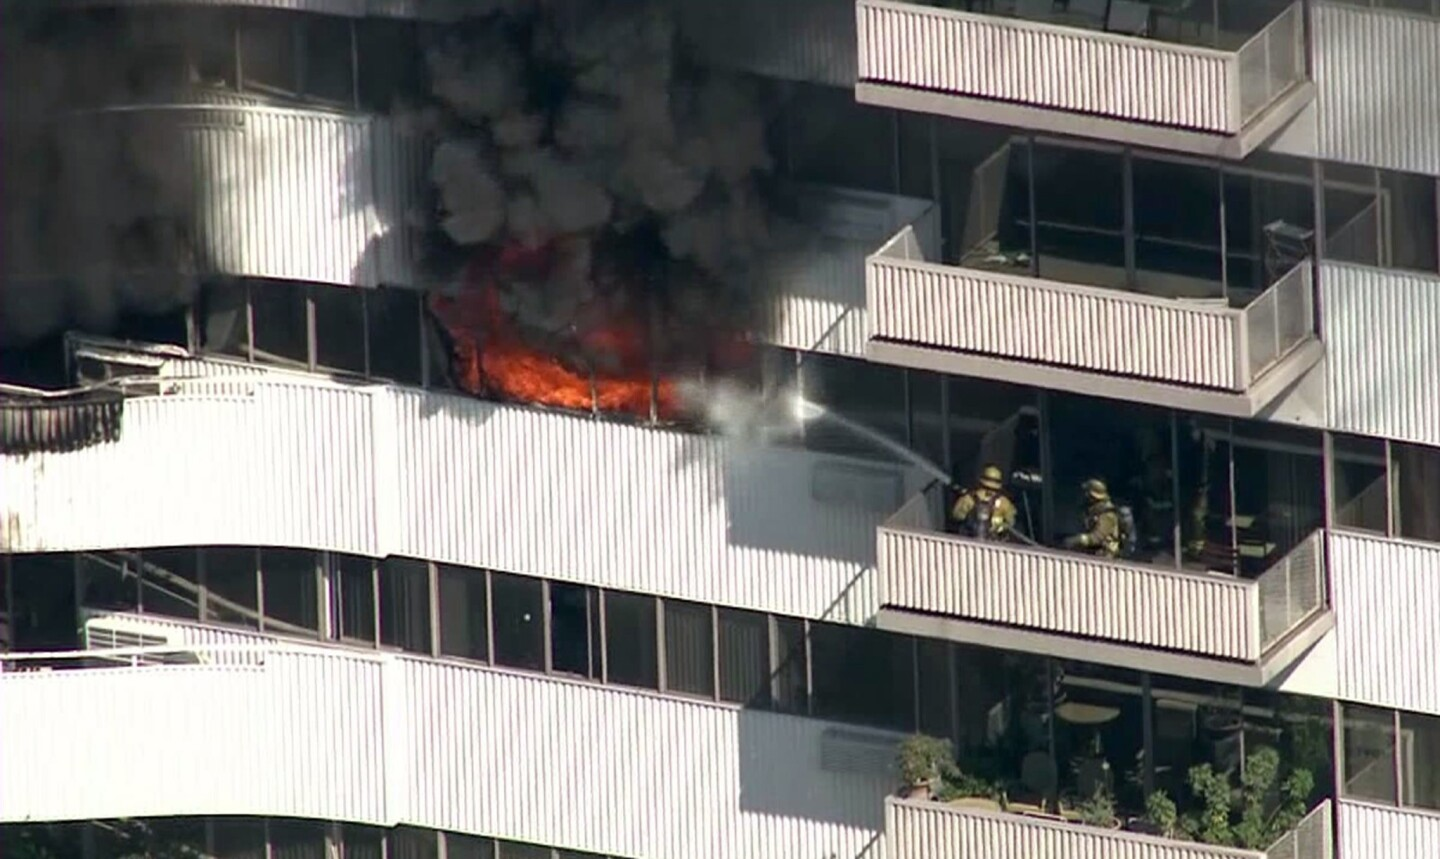 A fire burns on the 11th floor of the Barrington Plaza apartments. L.A. fire officials said the building, in the 11700 block of Wilshire Boulevard, is not equipped with a sprinkler system because it was built 52 years ago and does not fall under state regulations adopted in 1974 that require buildings taller than 75 feet to include such fire-suppression systems.